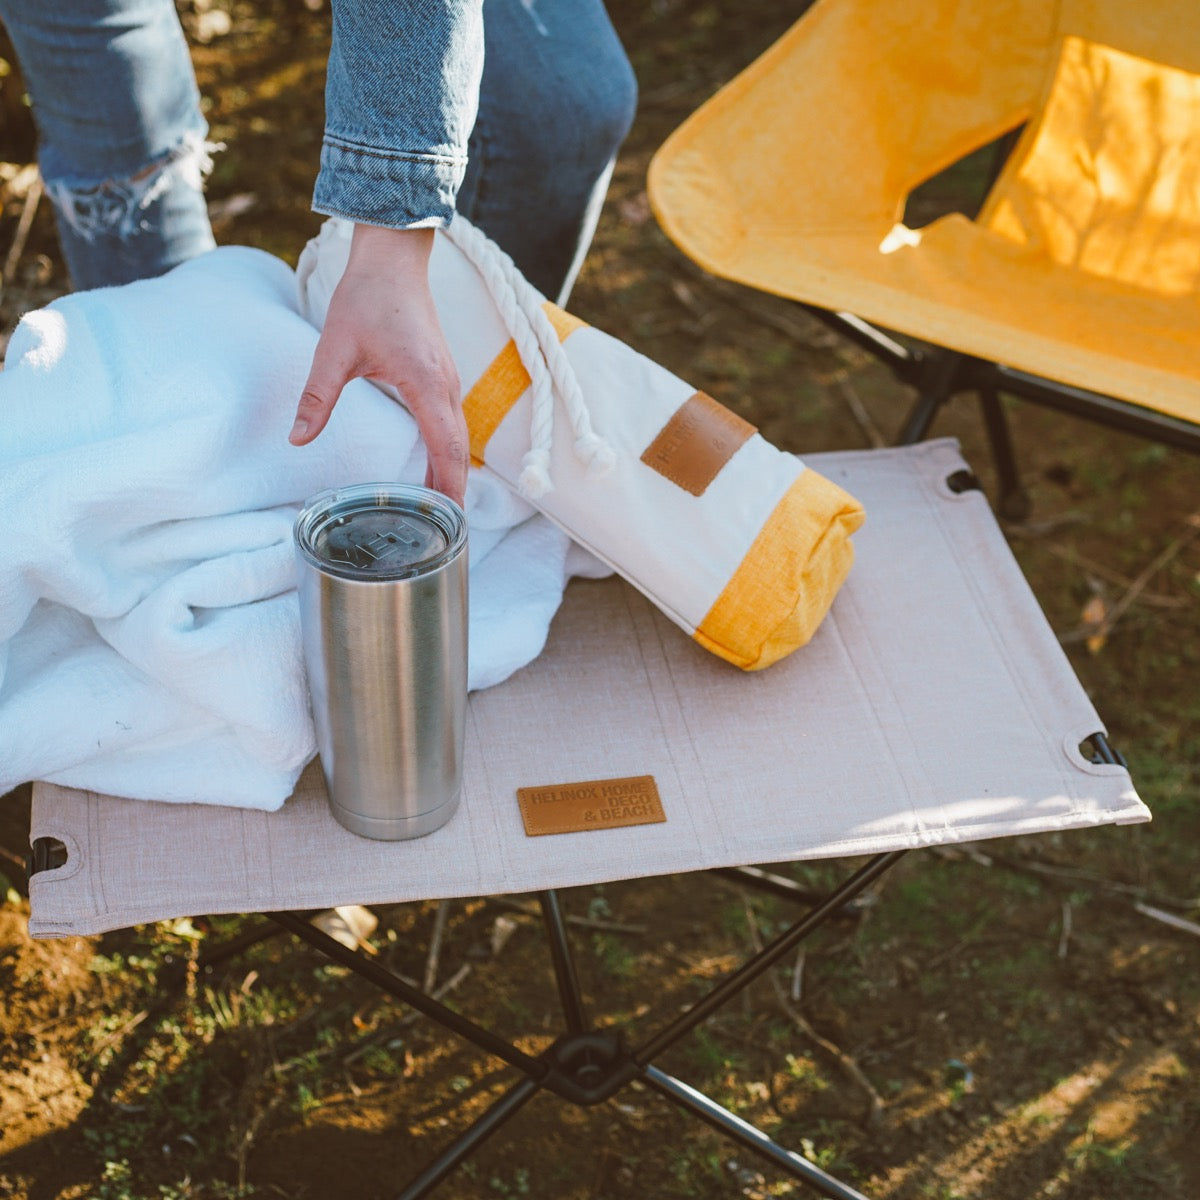 From camp to glamp Table One Home